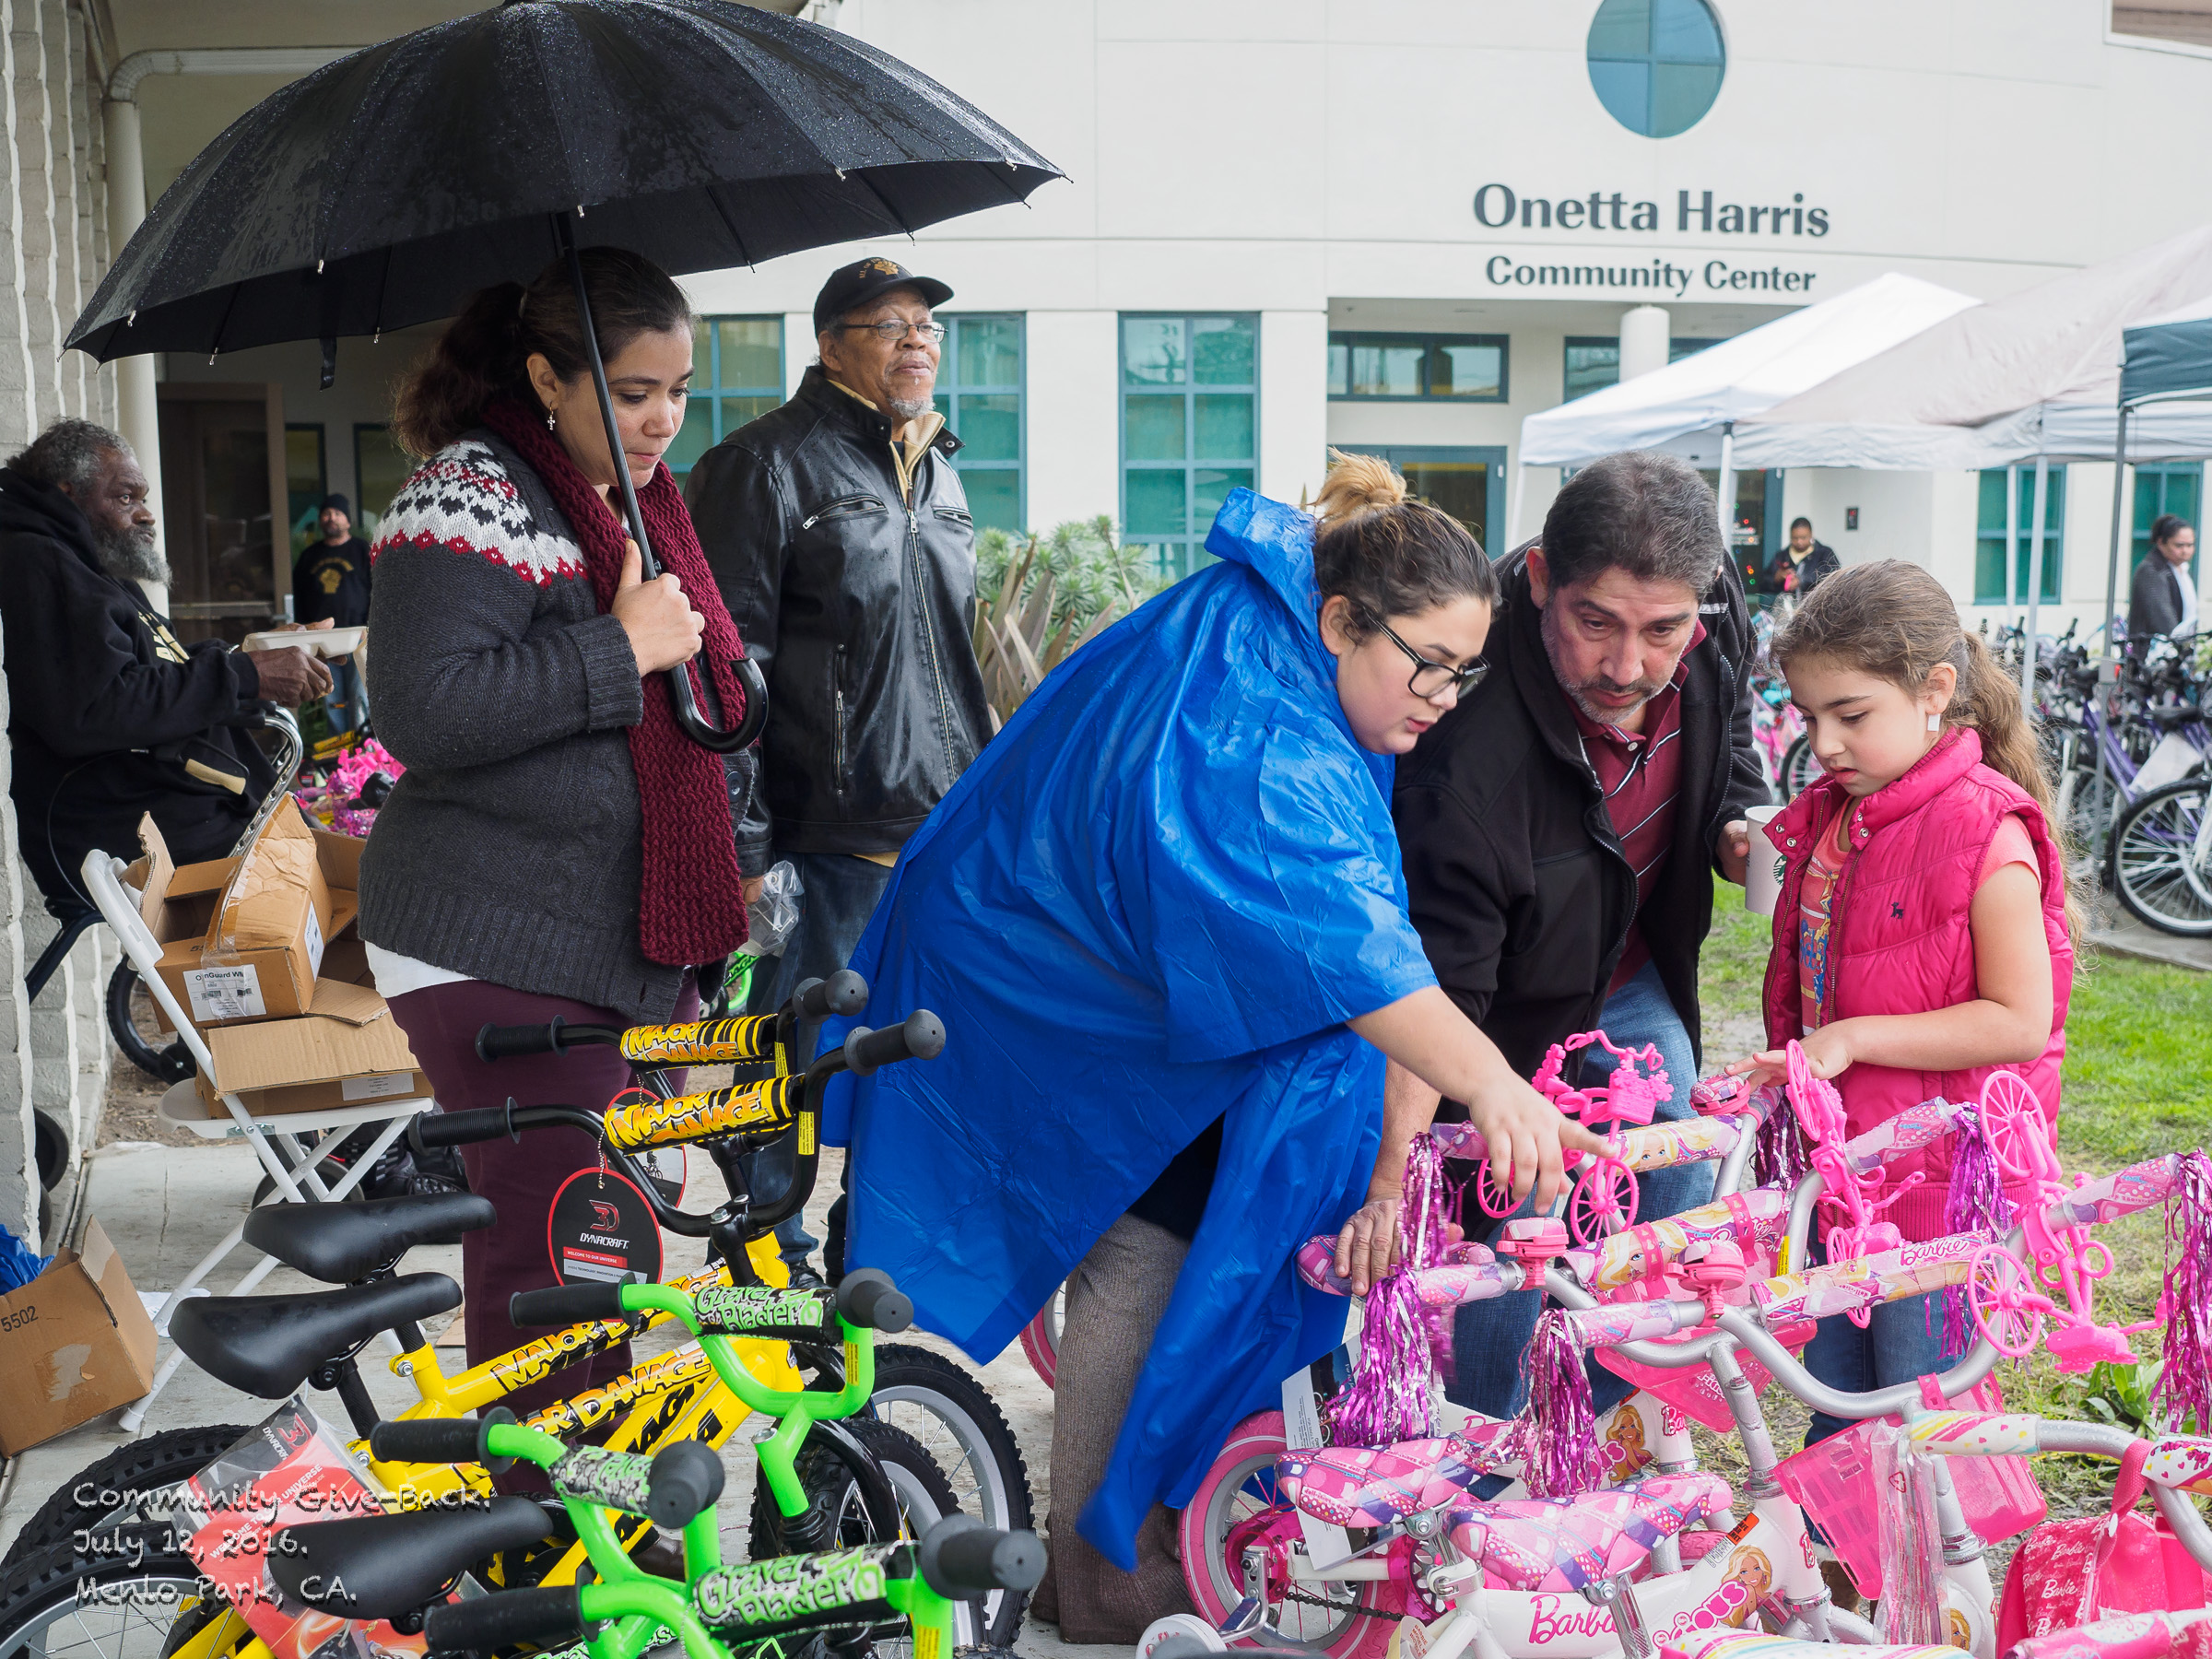 2016 Community Give Back.  Members of All of Us or None, an organization that supports rights of formerly imprisoned people, and Legal Services for Prisoners with Children gave away about 100 new bicycles to children of imprisoned people.  Each child got a bike, a helmet, and lunch, wrote thank you notes to the imprisoned parent who arranged the gift, and got a photo taken showing the child/children with new bikes.  A print of the photo is sent inside for one parent, and to the house for the rest of the family.